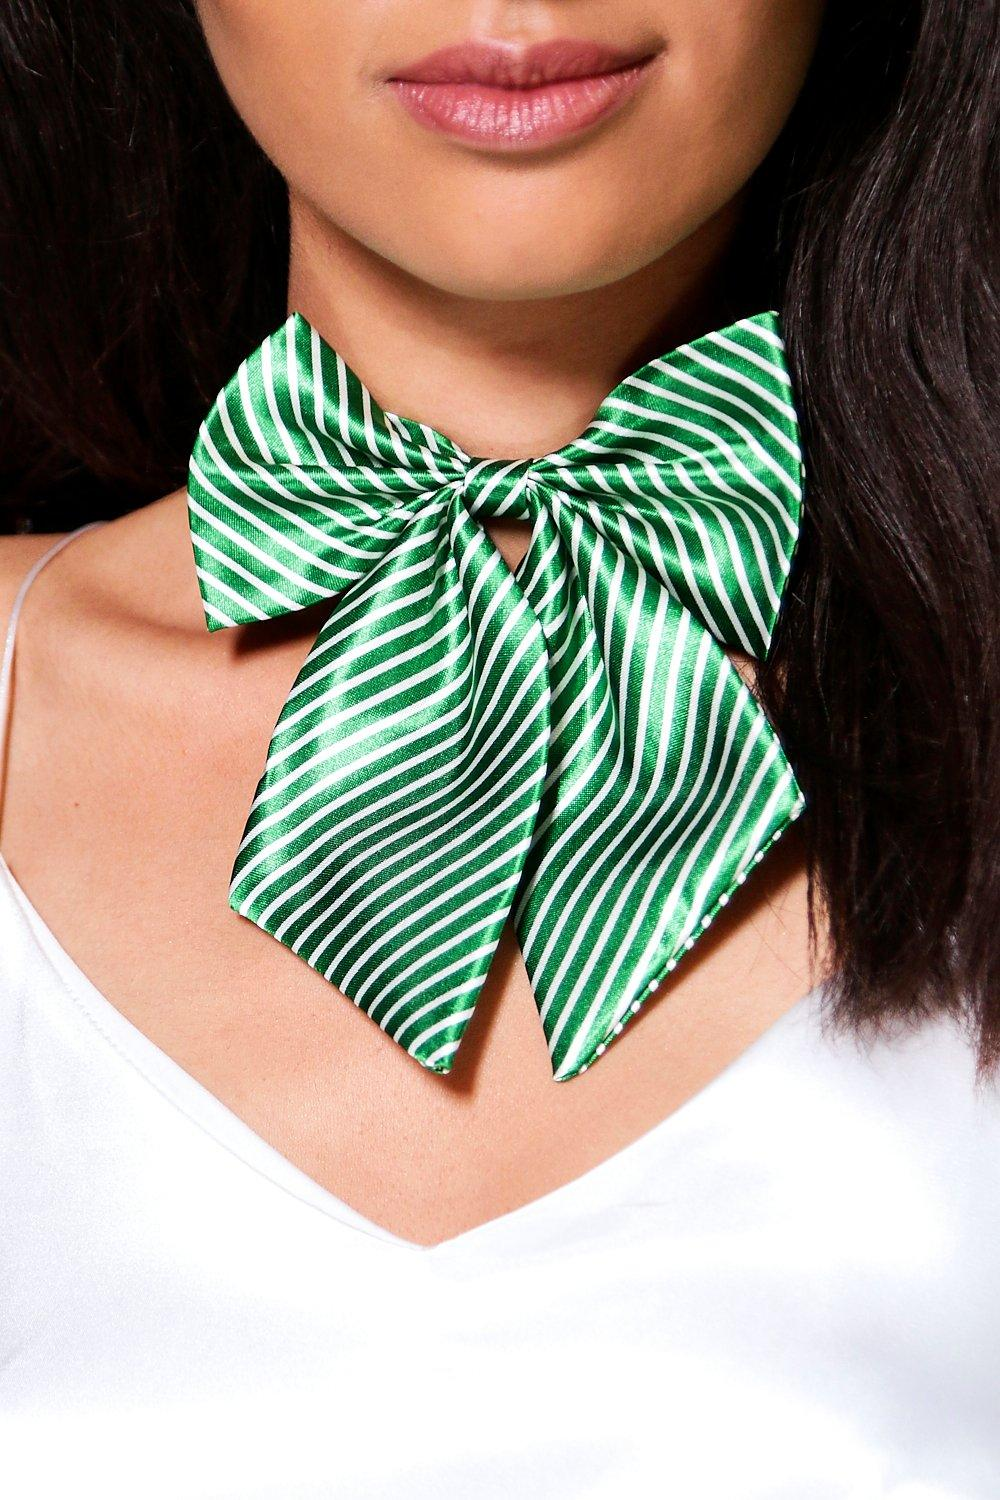 Edie Christmas Bow Satin Choker